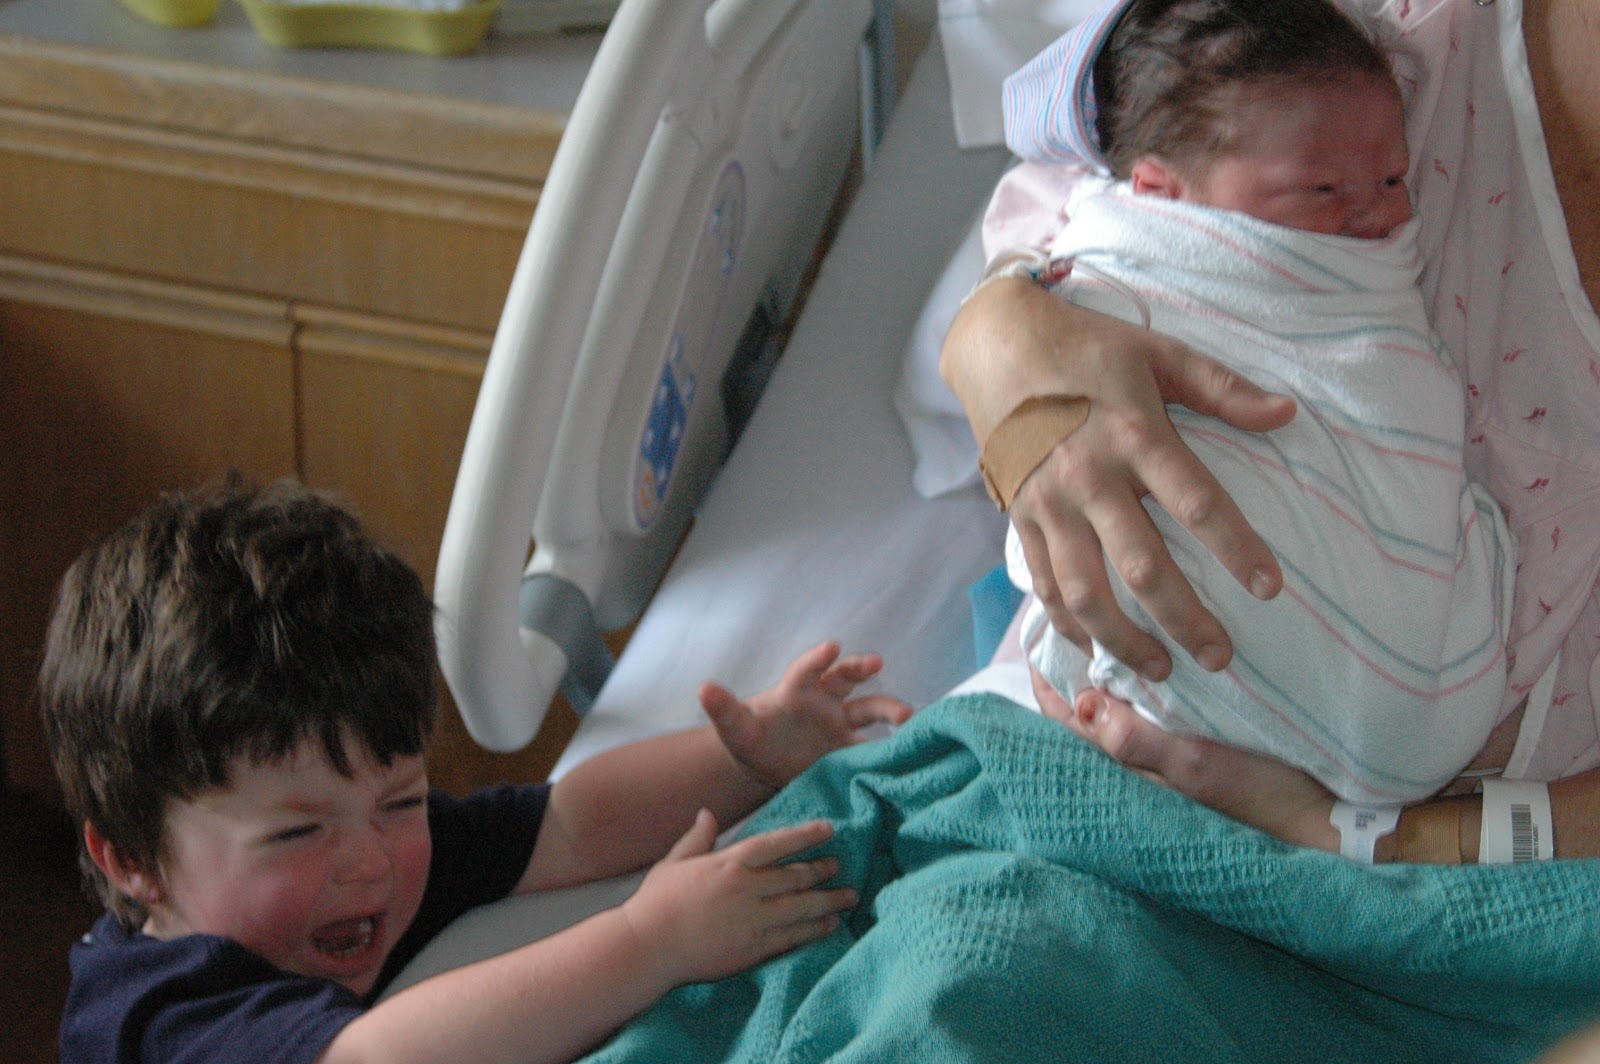 Beau felt an instant desire to hold his baby brother for the first time.